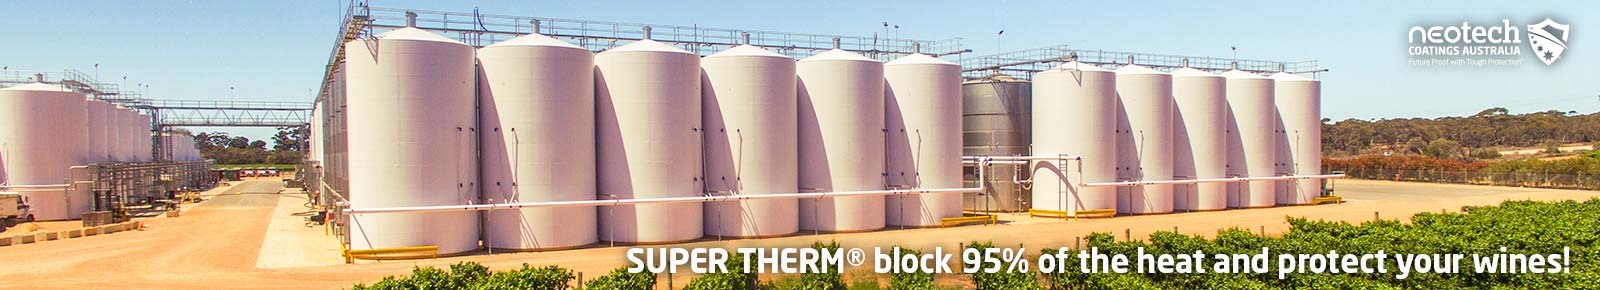 NEOtech Coatings - Super Therm Insulation Coating stops 95% of heat in your winery